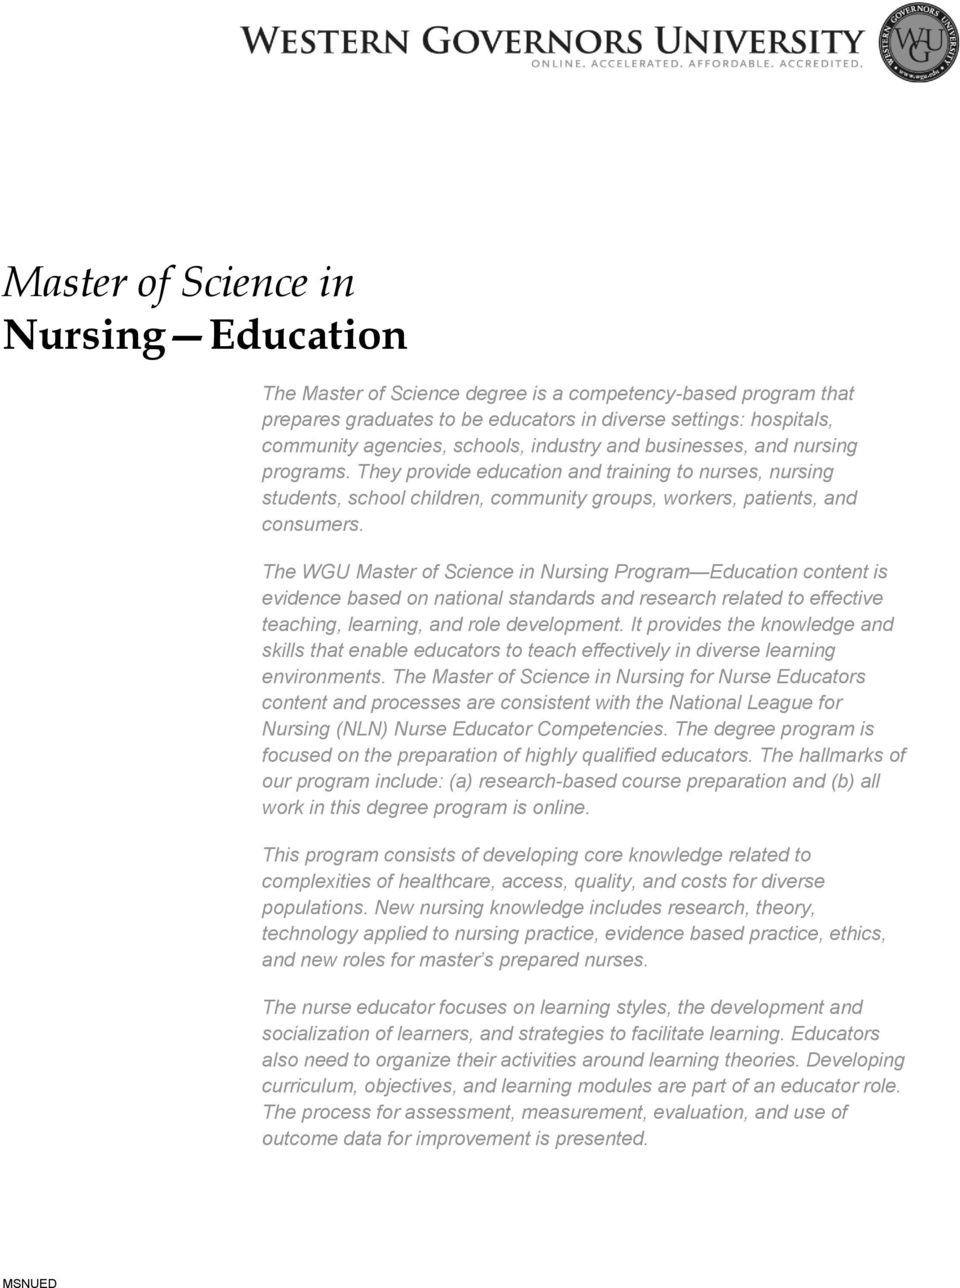 The WGU Master of Science in Nursing Program Education content is evidence based on national standards and research related to effective teaching, learning, and role development.